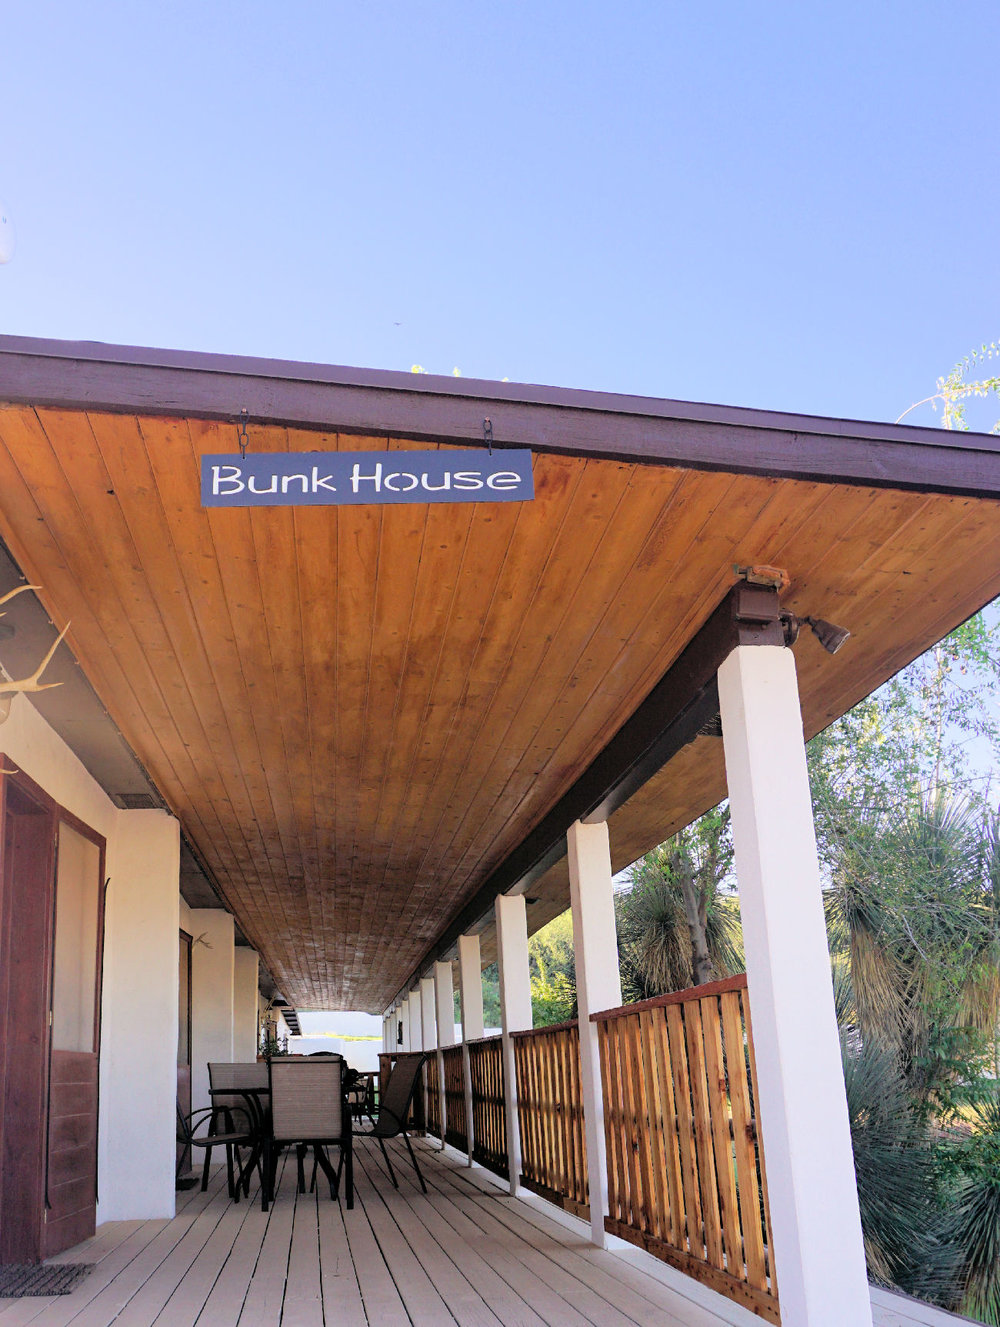 Bunk house sign and front porch.jpg